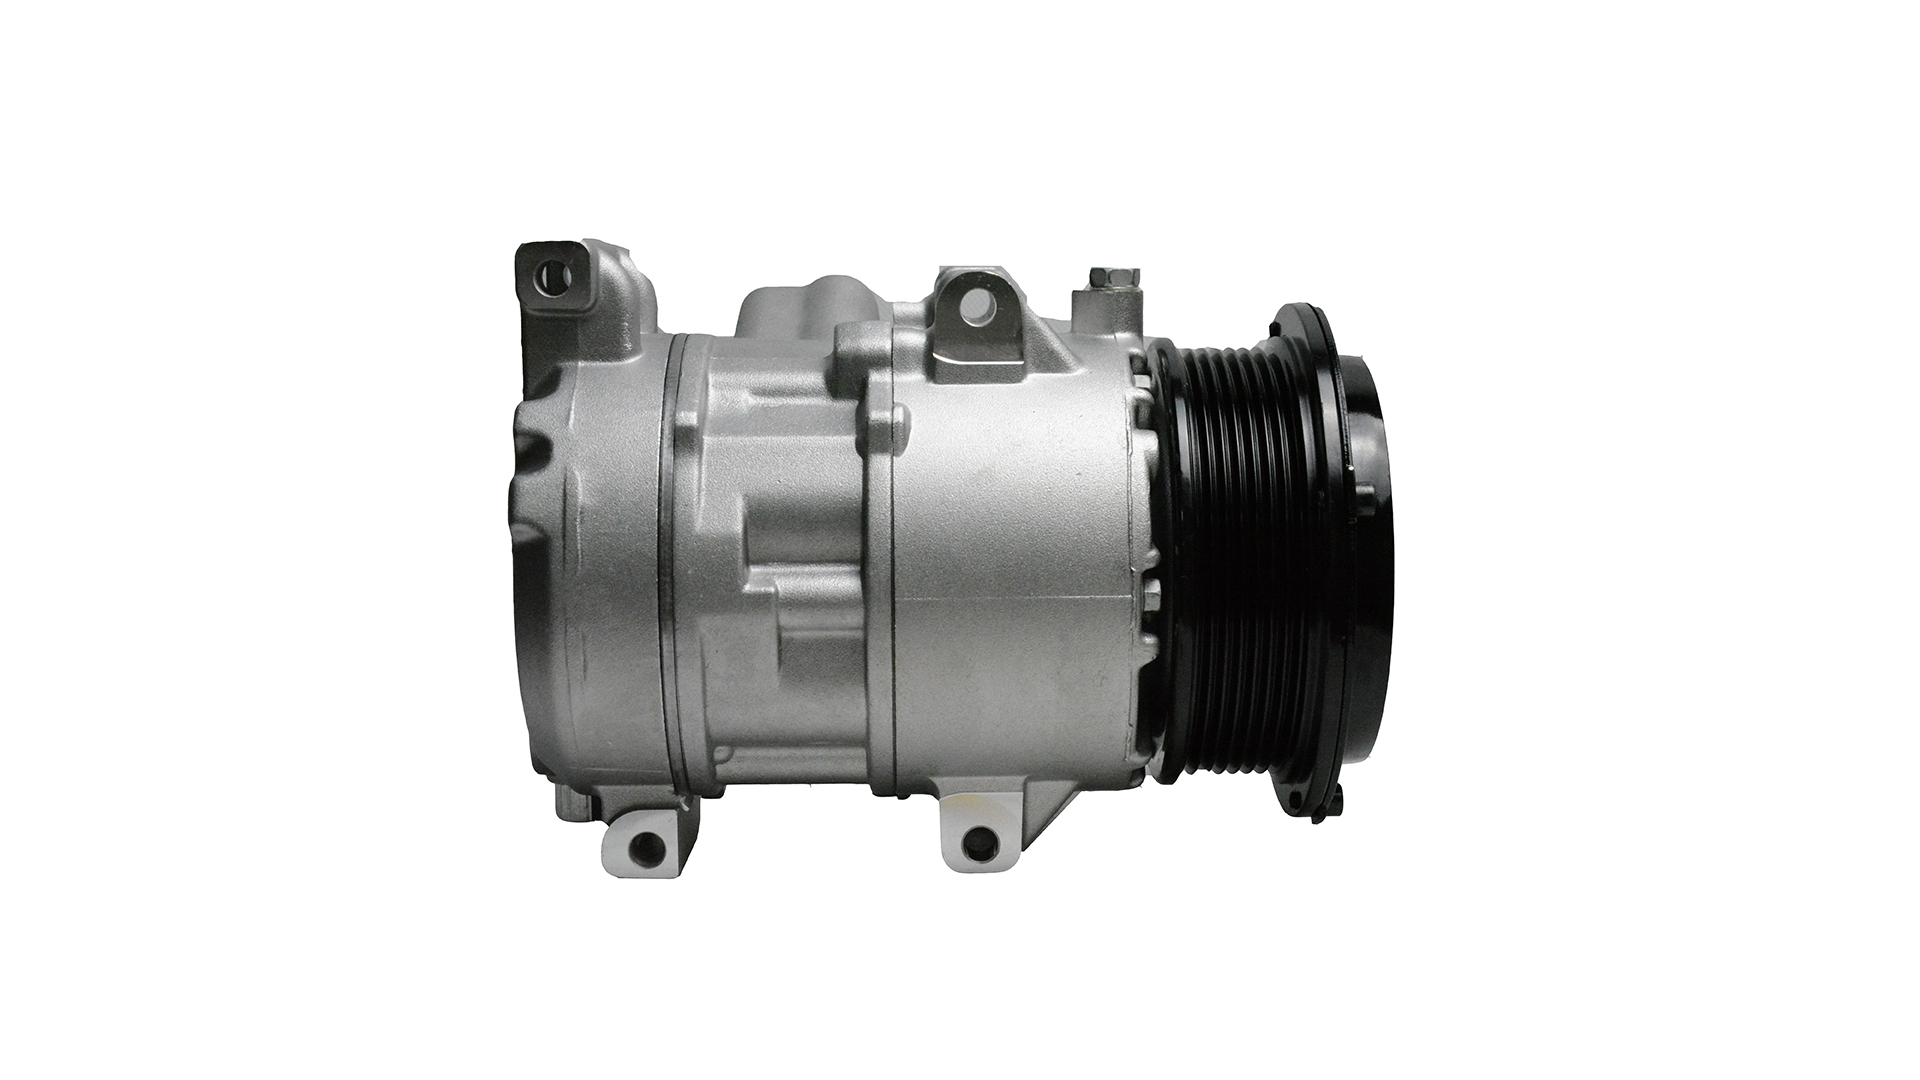 88310-06320 / 88310-06330 / 88310-33250 compressor conditioner ho an'ny TOYOTA CAMRY ACV4 #